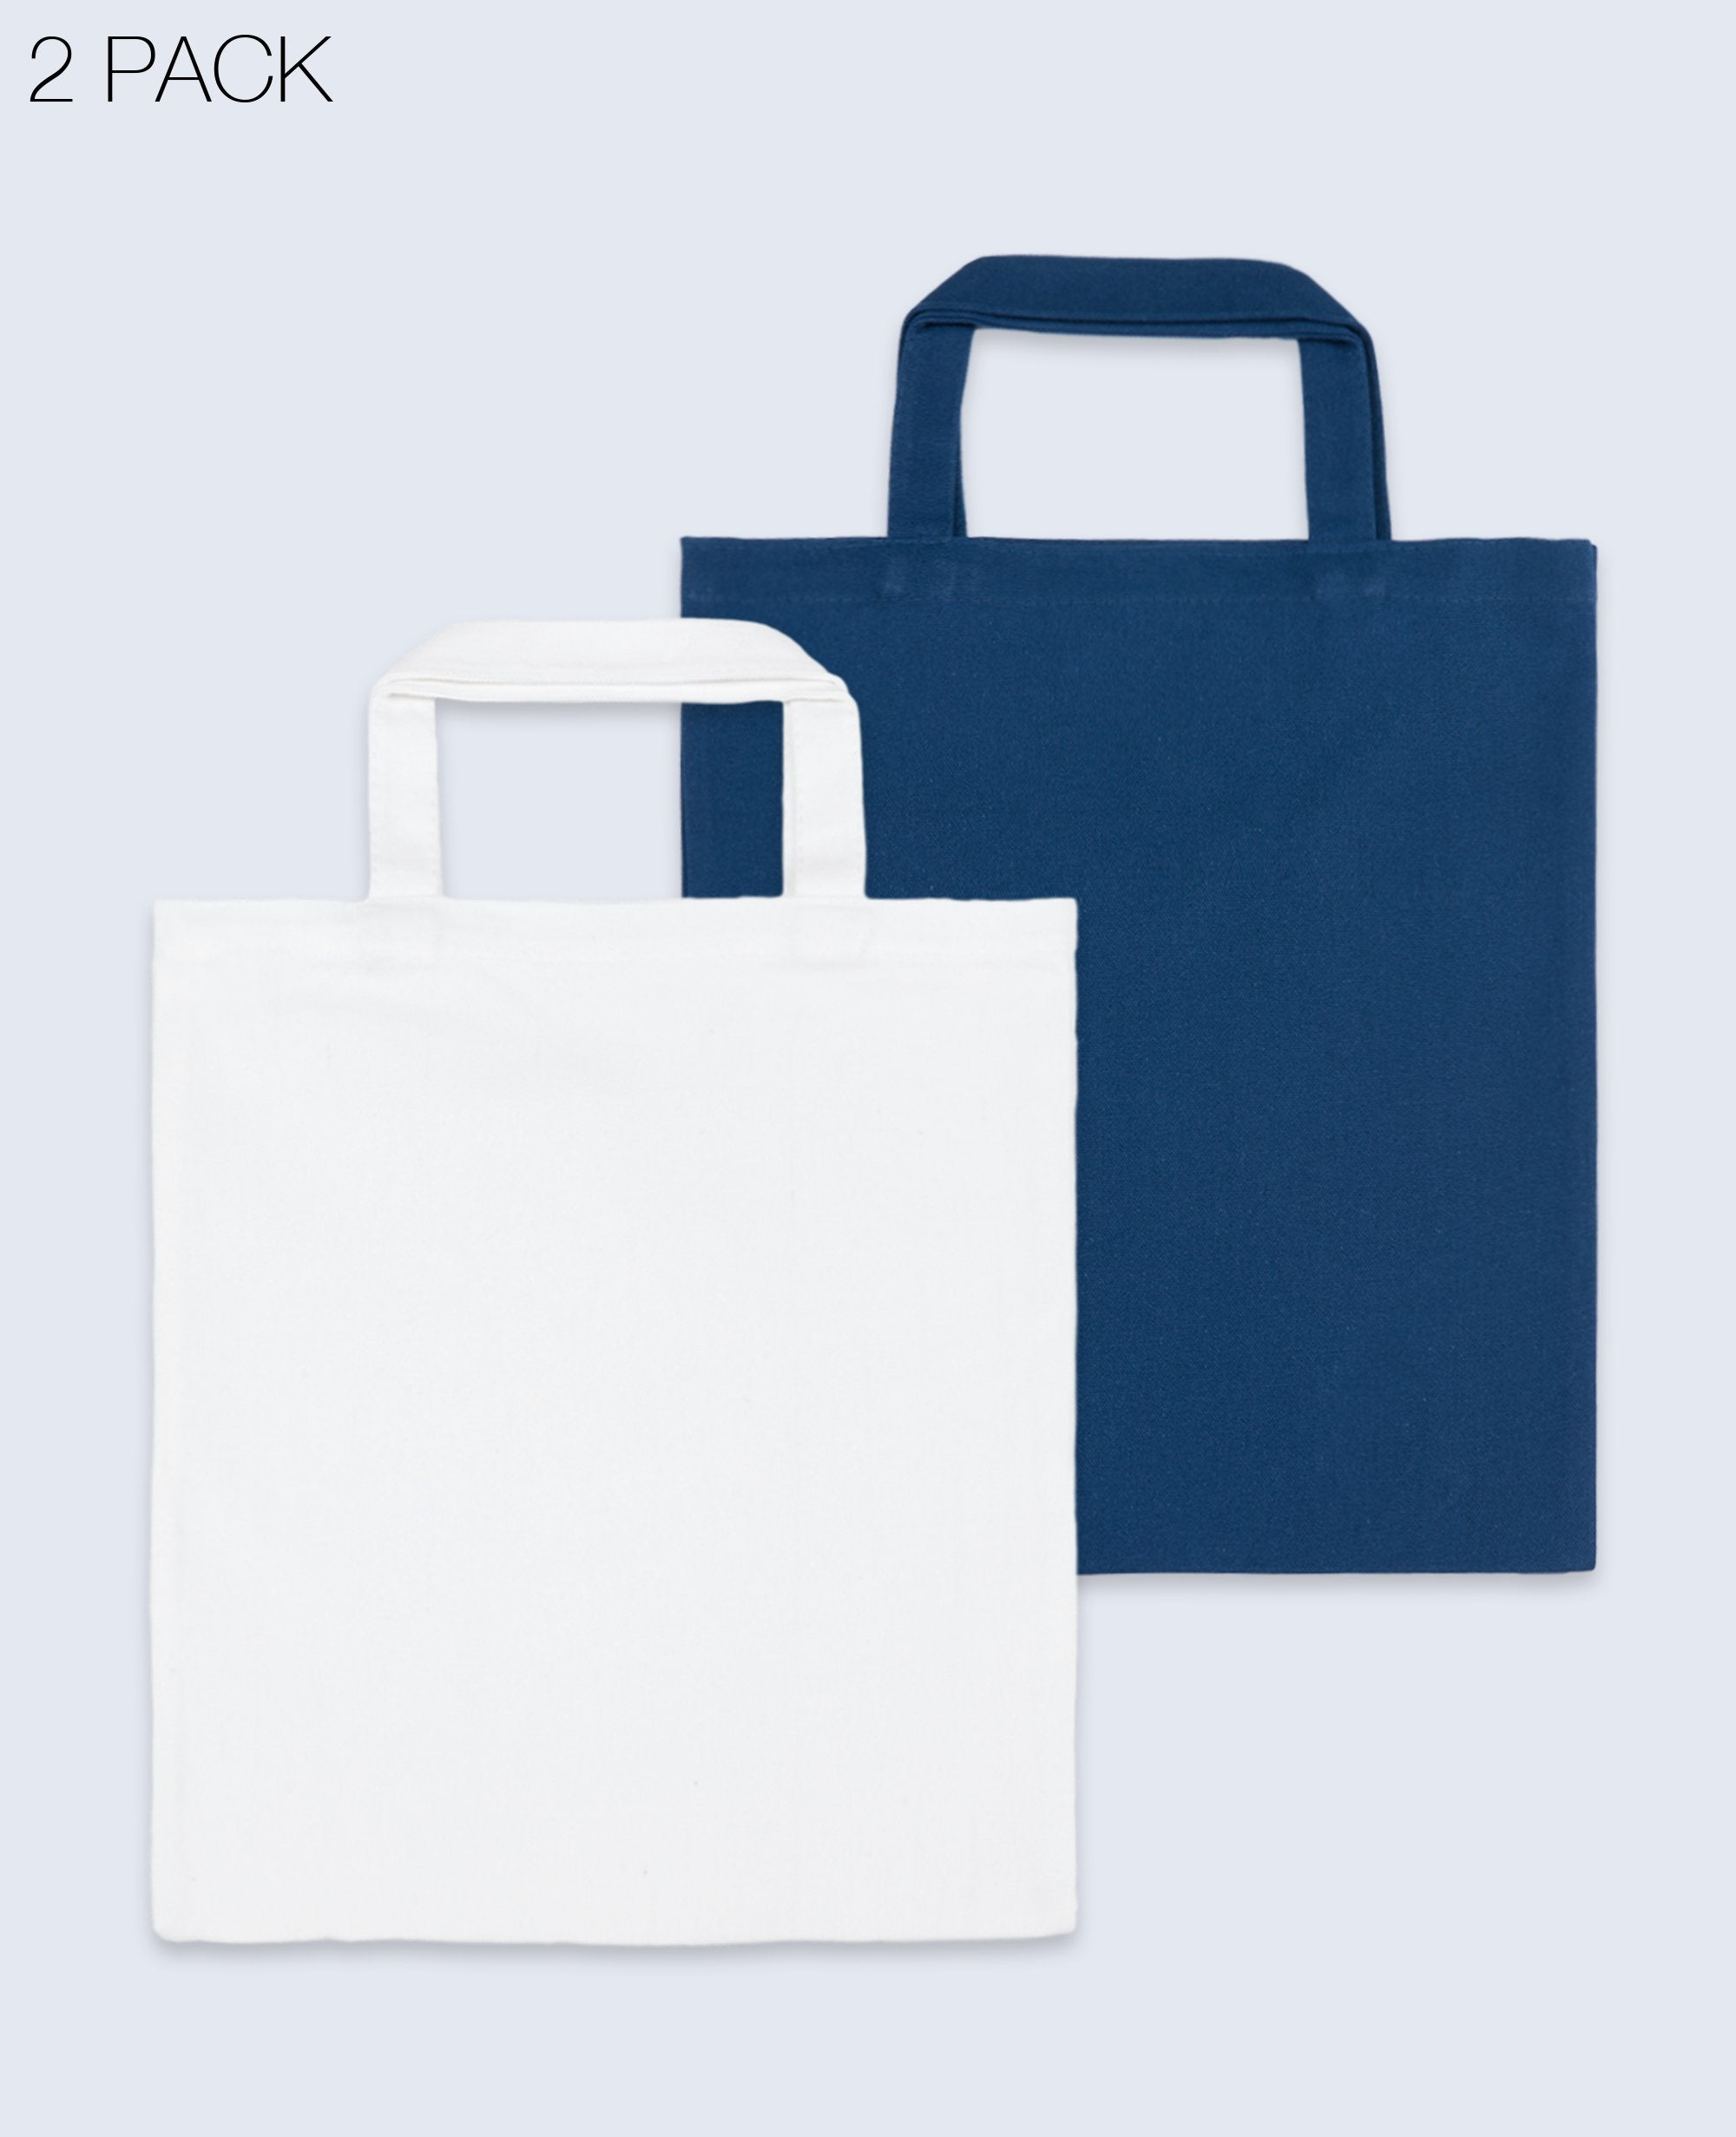 Short Handle Tote bag in White / Navy 2 pack - Tote Bag - BRANMA - BRANMA